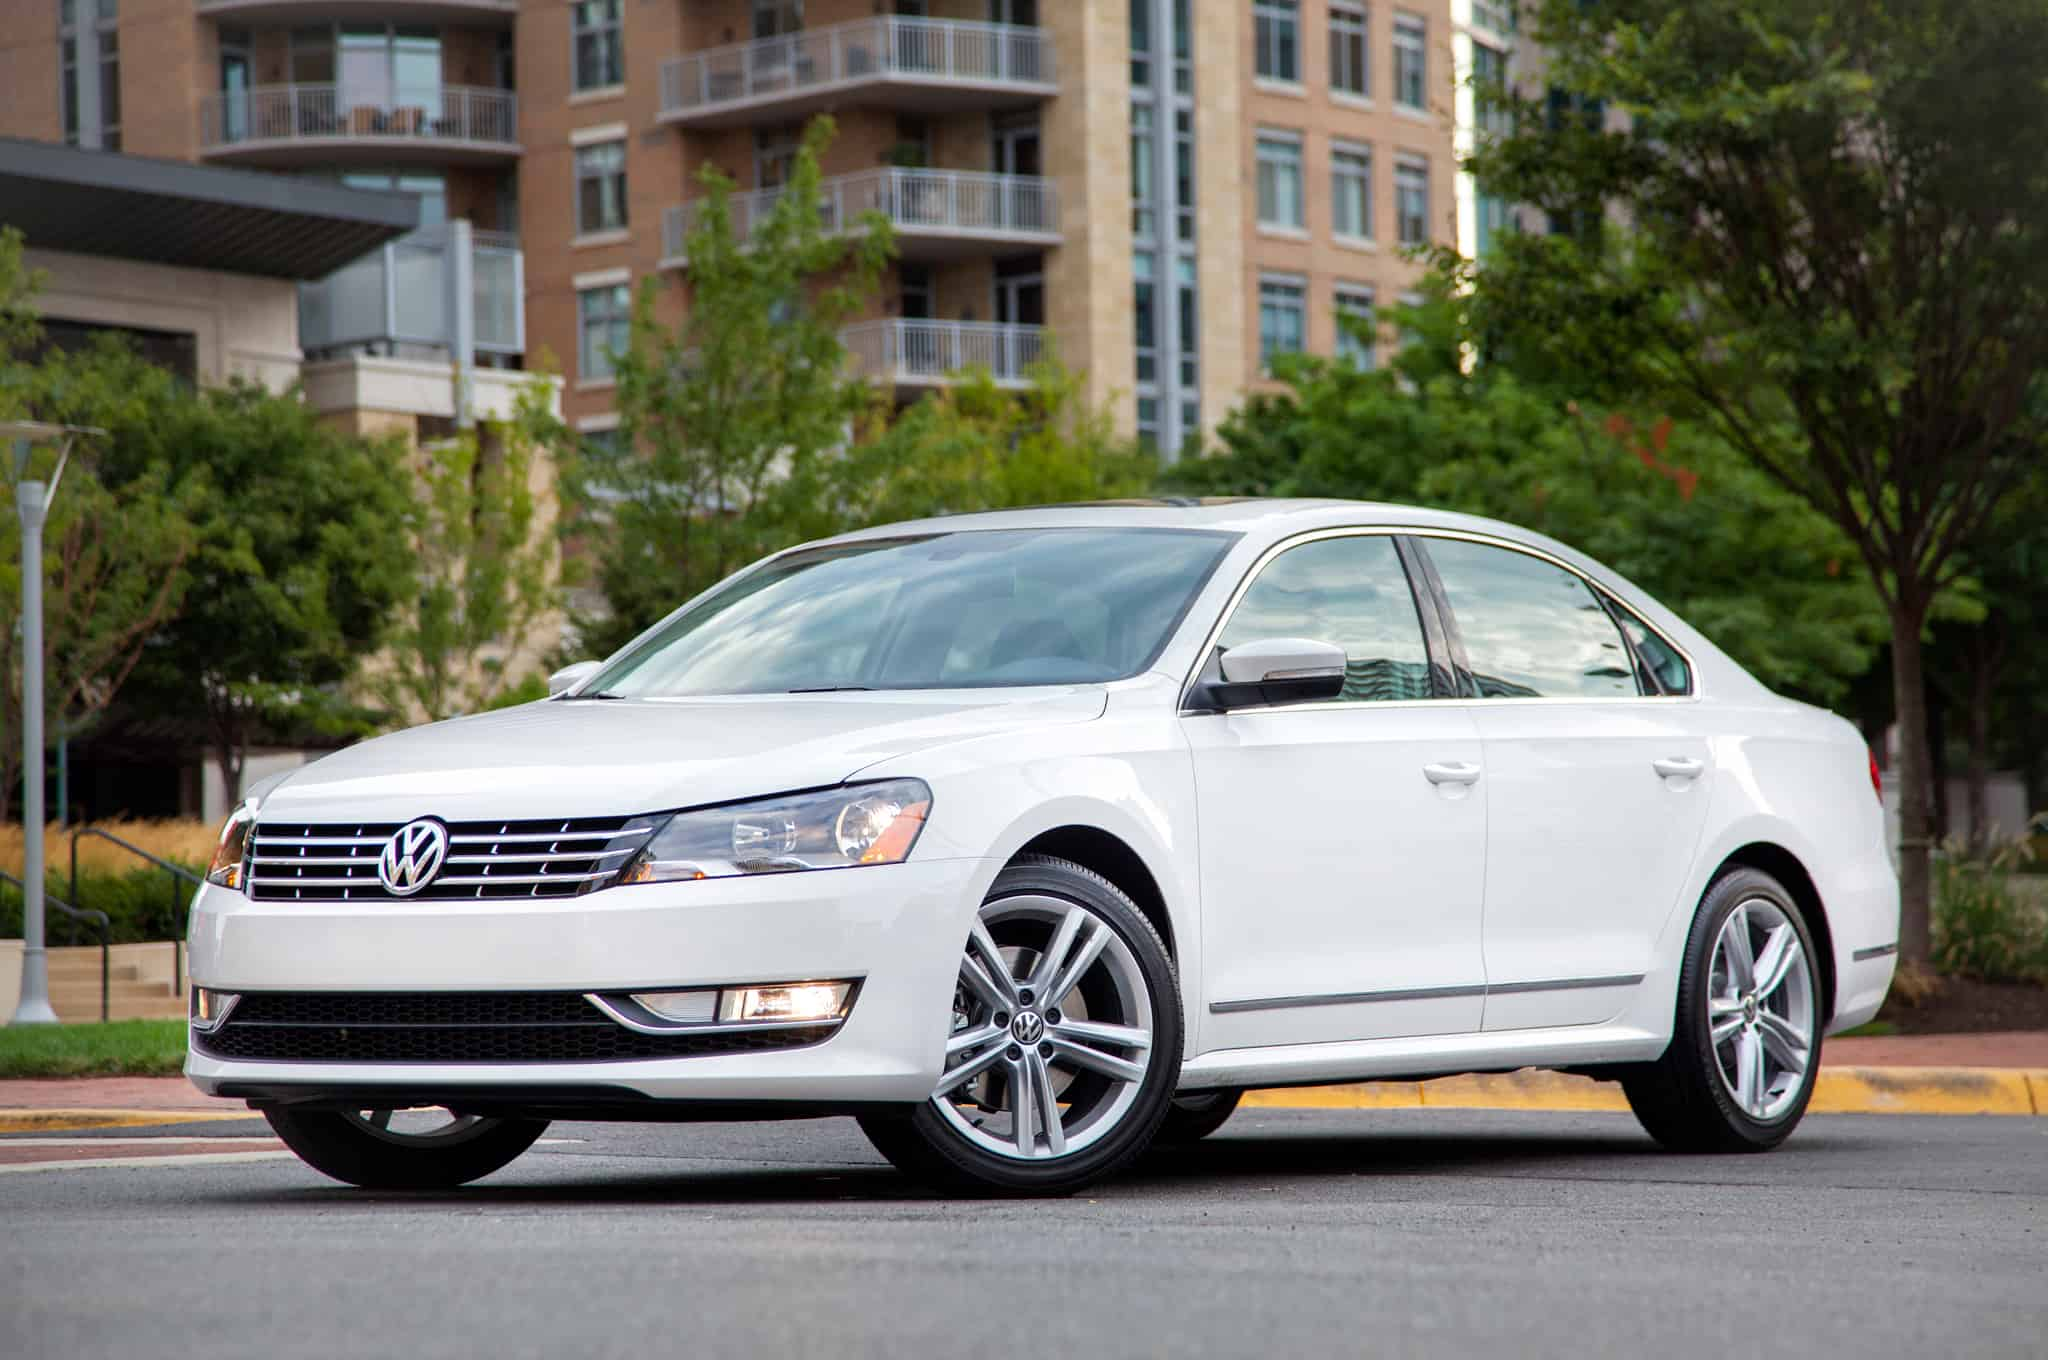 Volkswagen Passat – reliable car